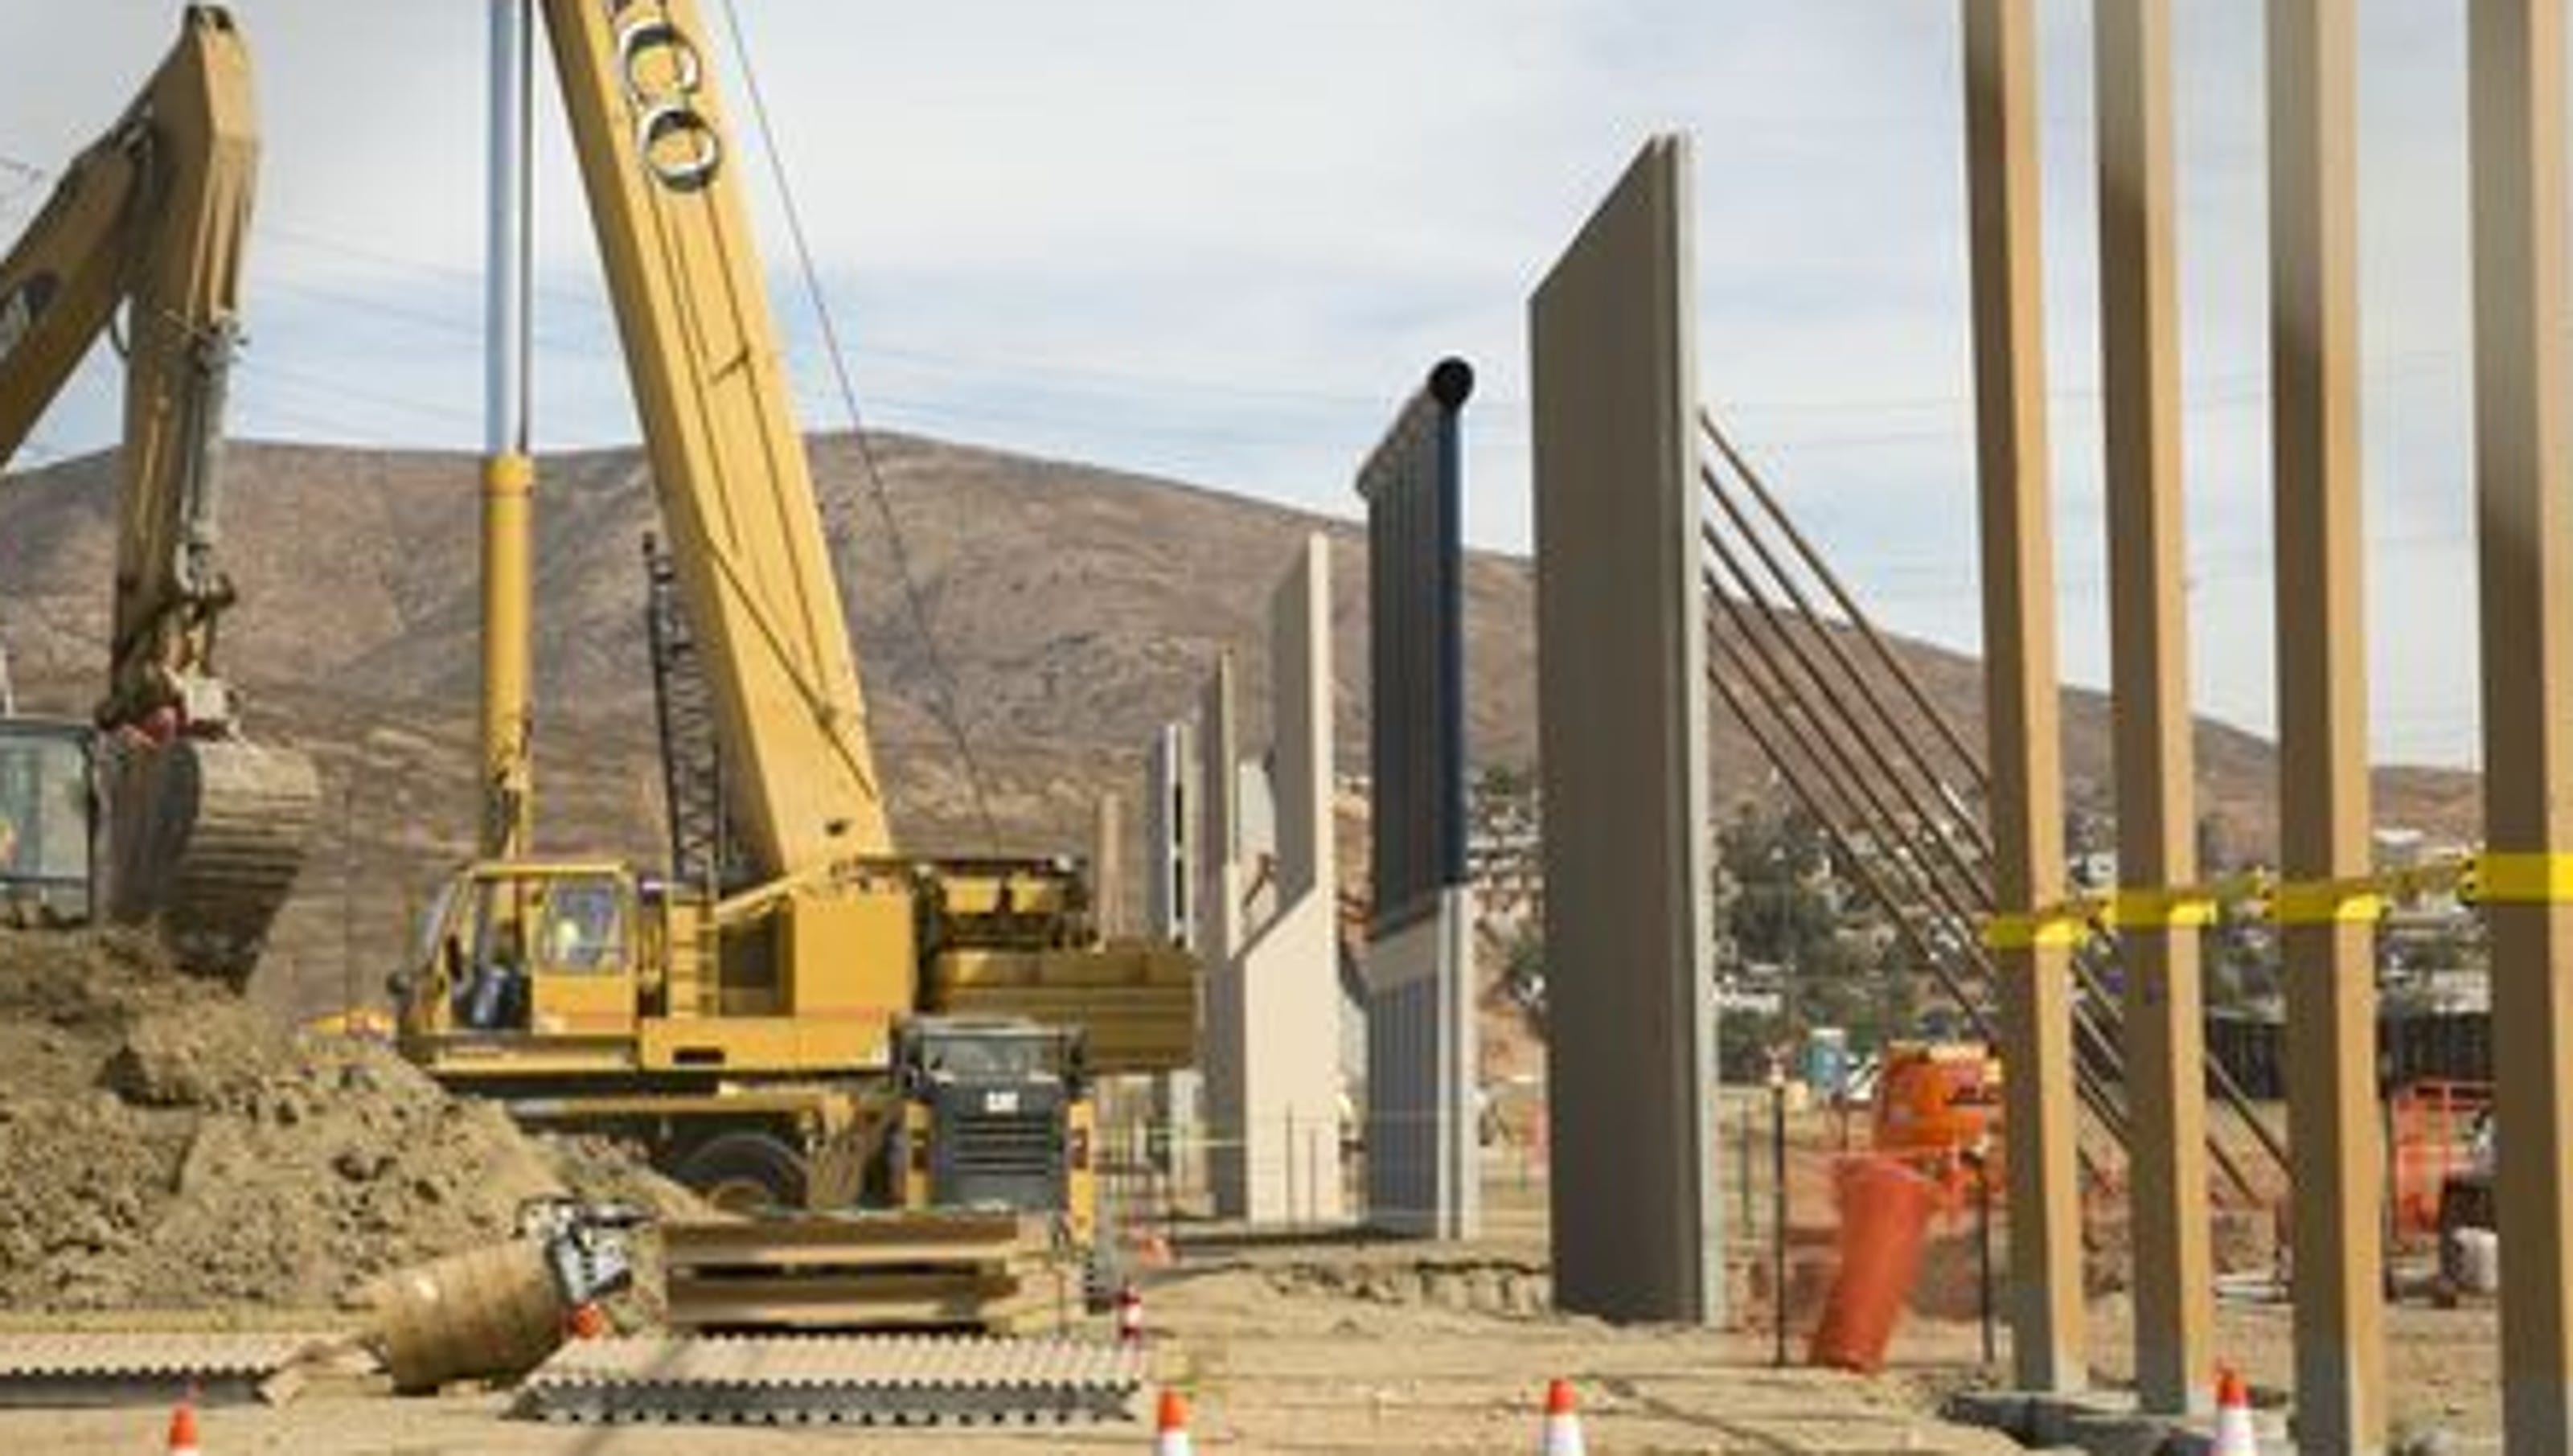 Trump S Border Wall Will Be More Like A Fence Flake Says